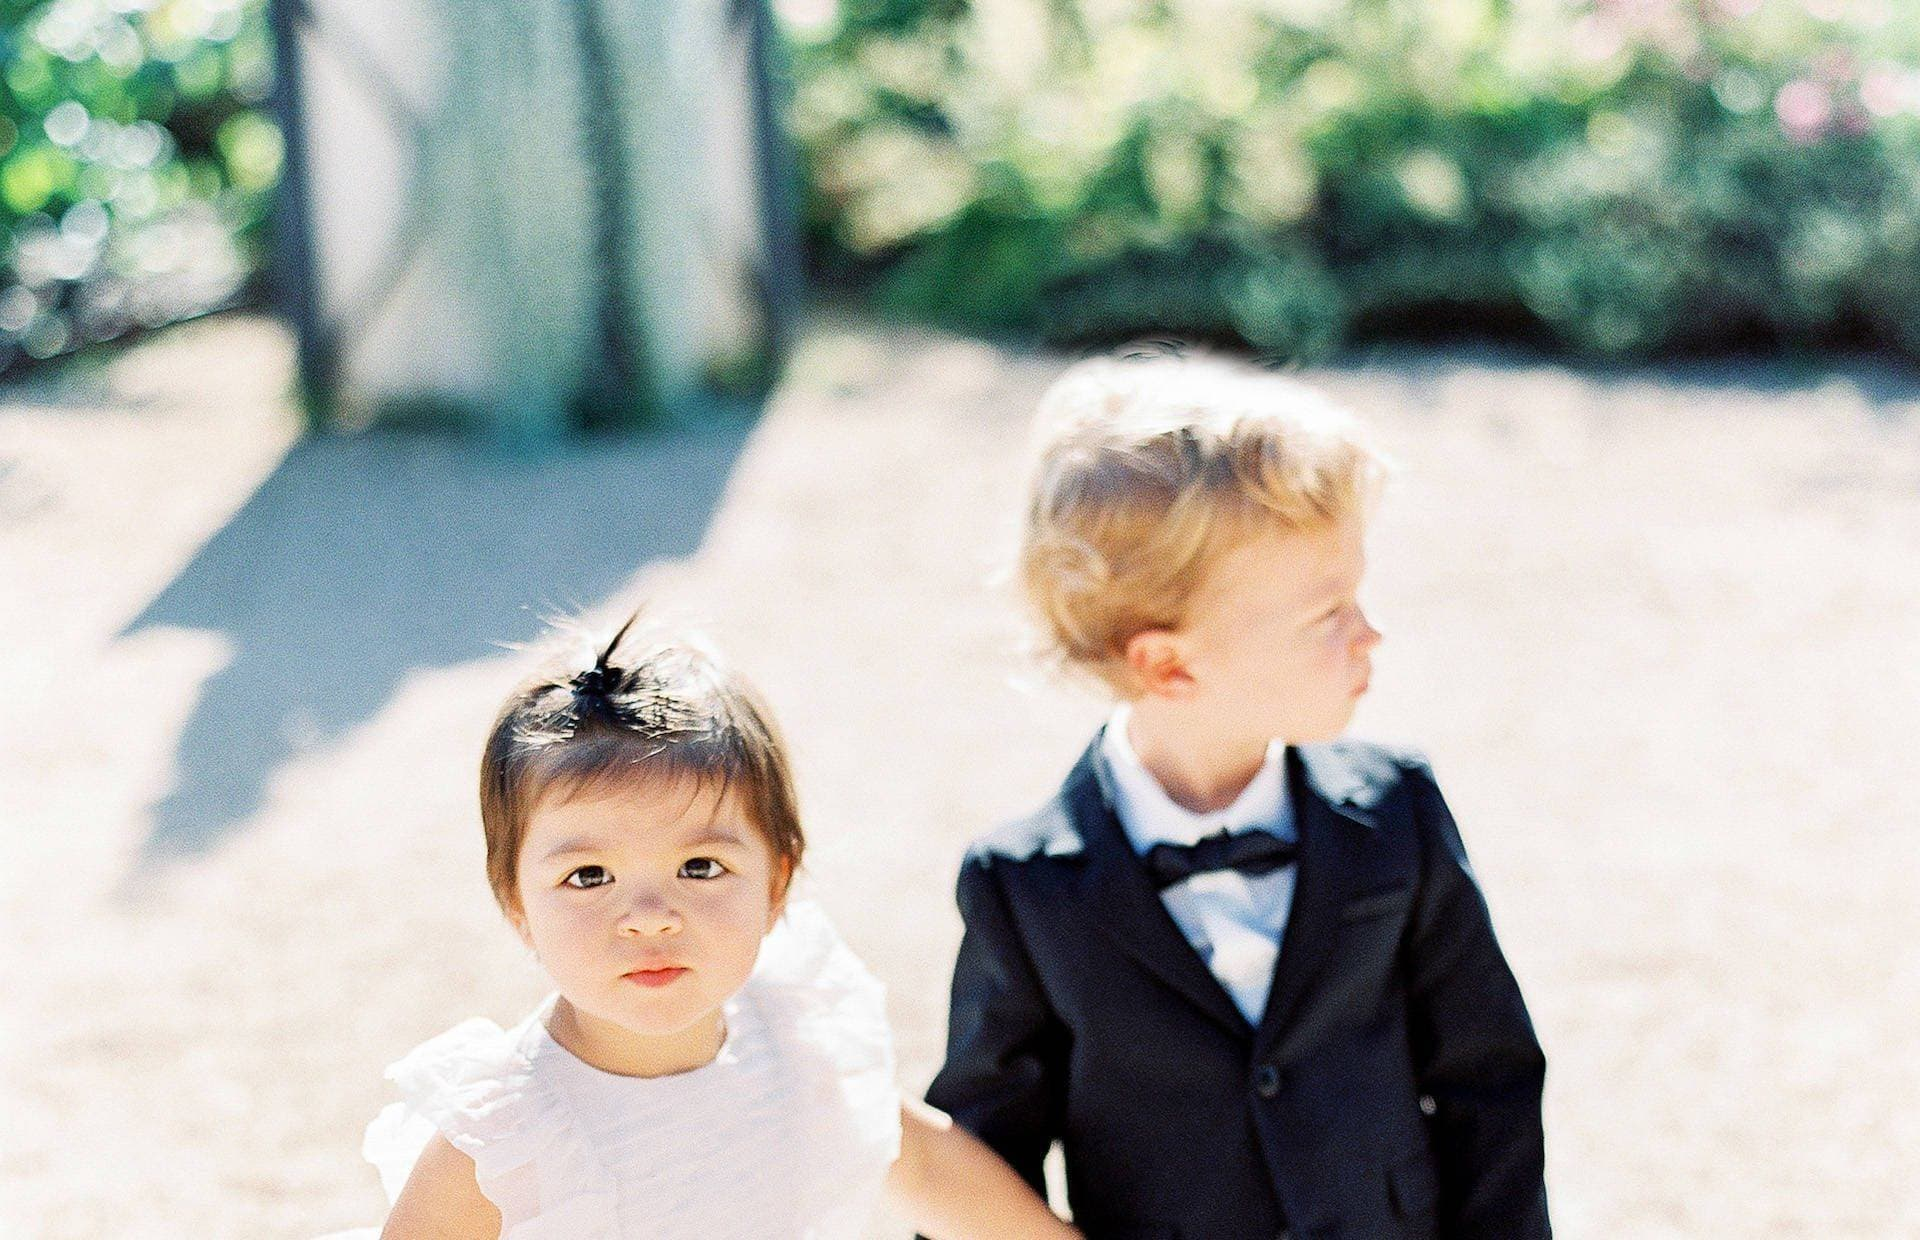 Martha Stewart Weddings ~ How to Tactfully Handle Your New Role as Stepparent after the Wedding